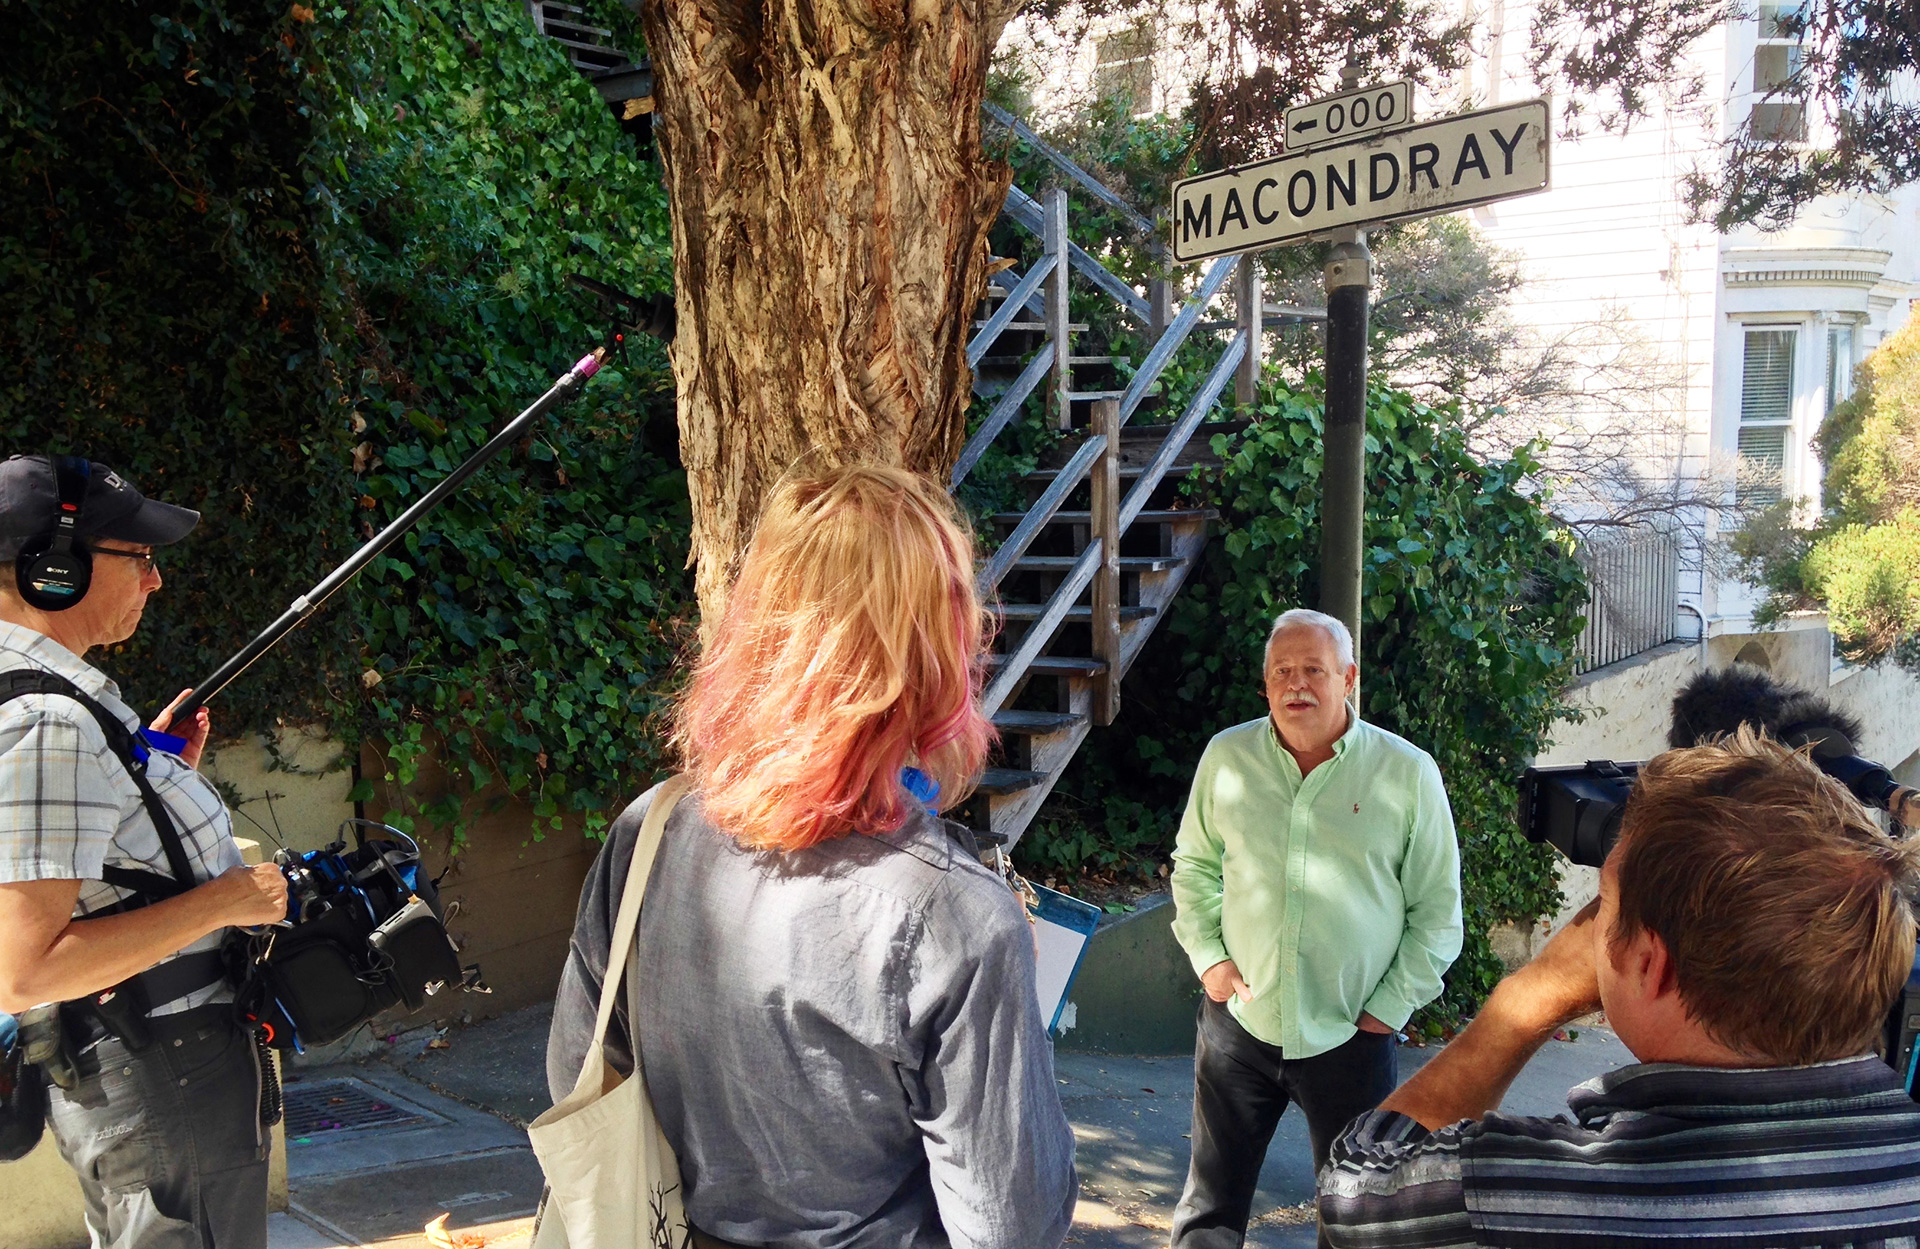 Filmmaker Jennifer Kroot interviews Maupin at steps to the real-life inspiration for Barbary Lane in Tales of the City